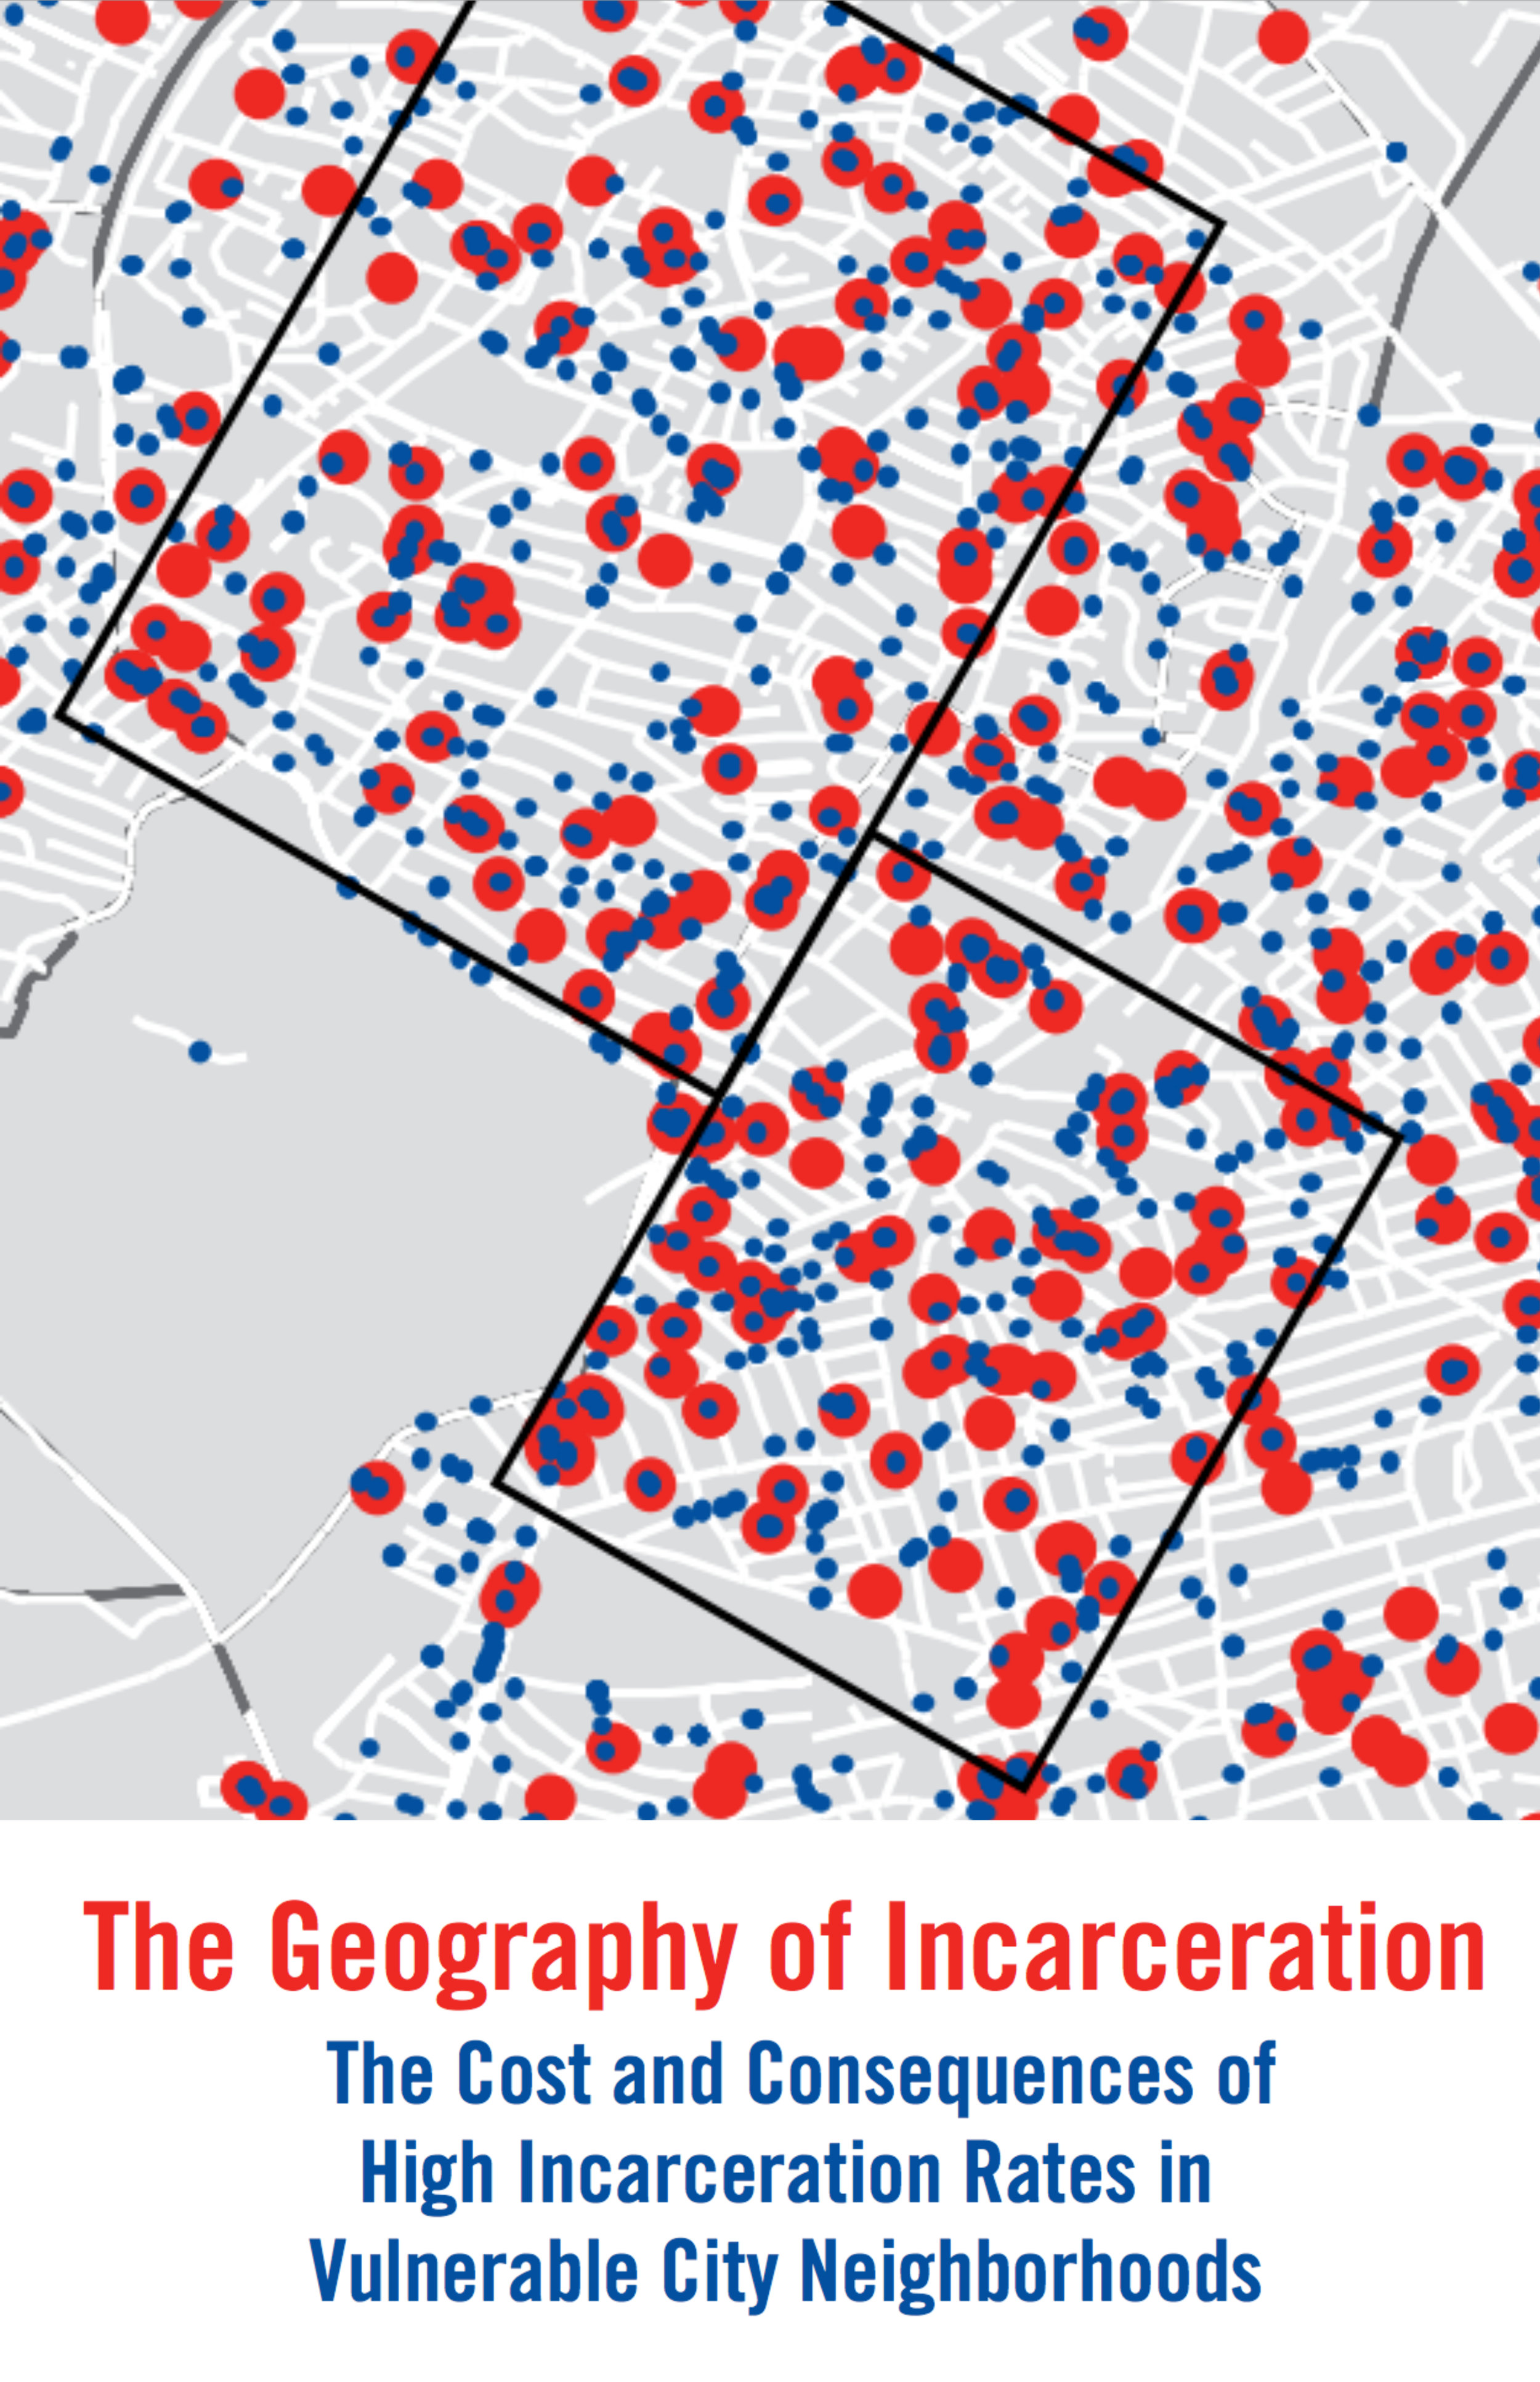 Geography of Incarceration Map.jpg